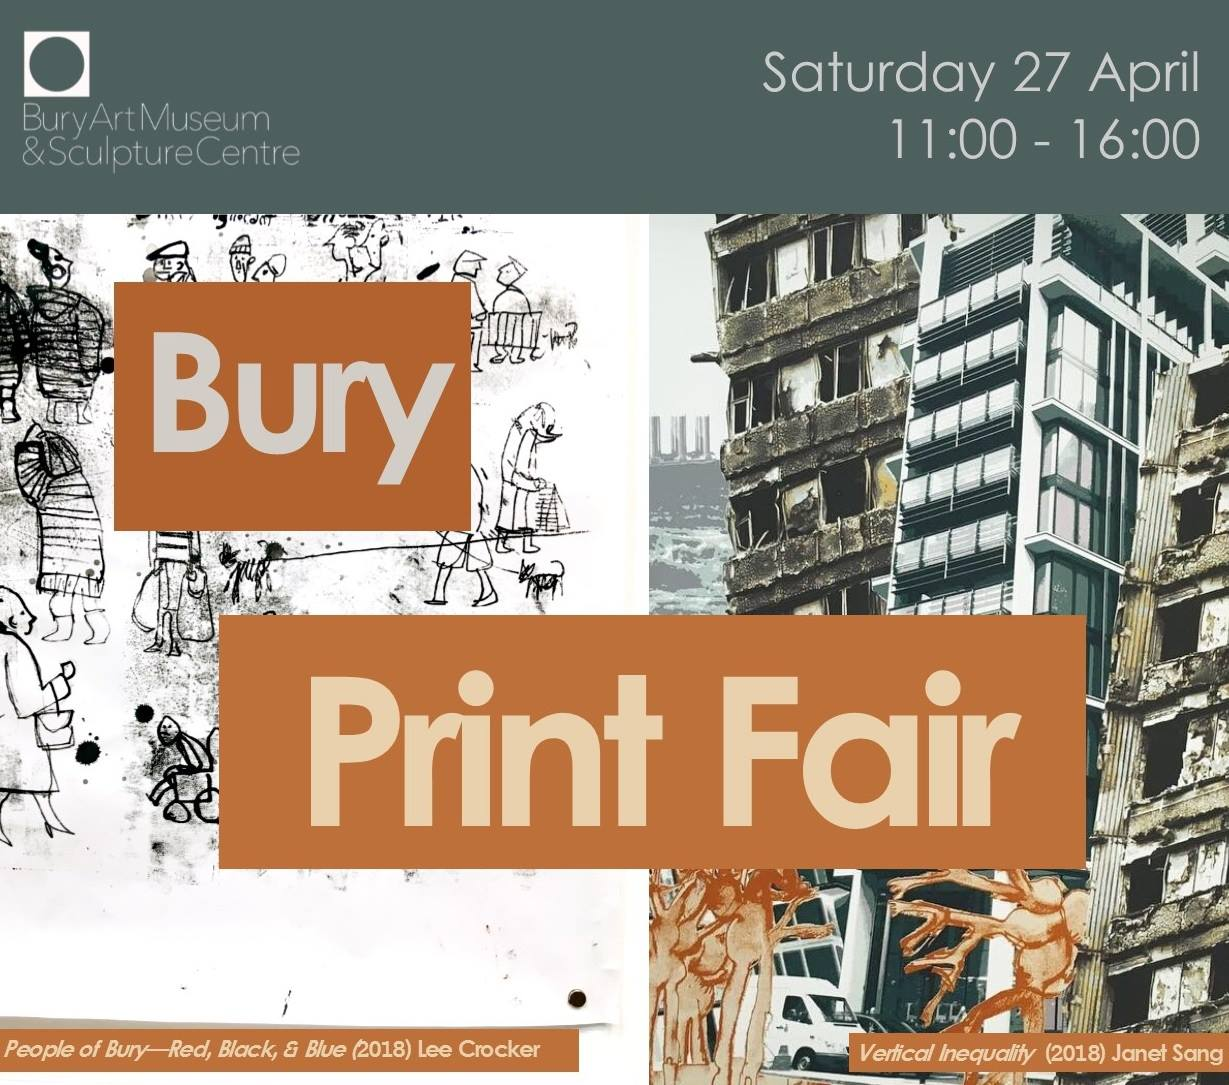 Bury Print Fair 2019 - part of the exhibition, 'Print - A Catalyst for Social Change' at Bury Art Museum & Sculpture Centre.